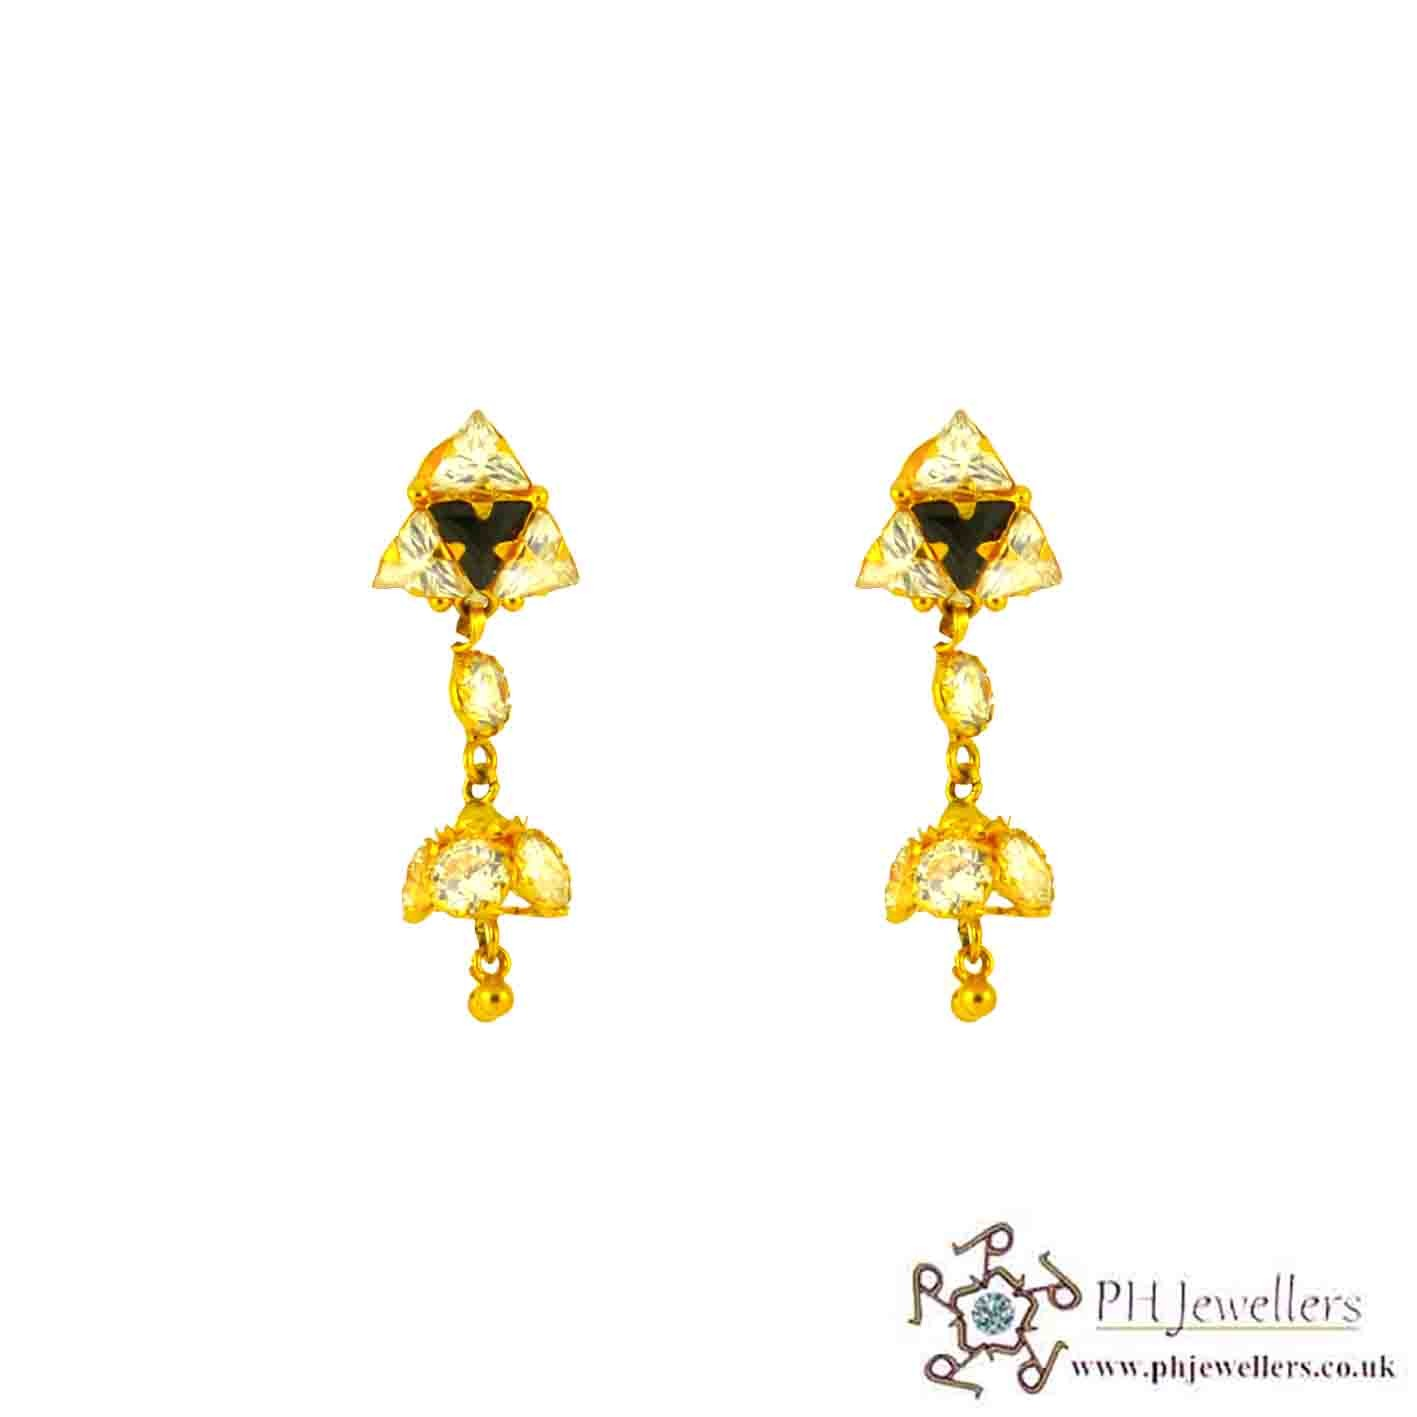 22ct 916 Hallmark Yellow Gold Dangle Black & White Earring CZ TE25